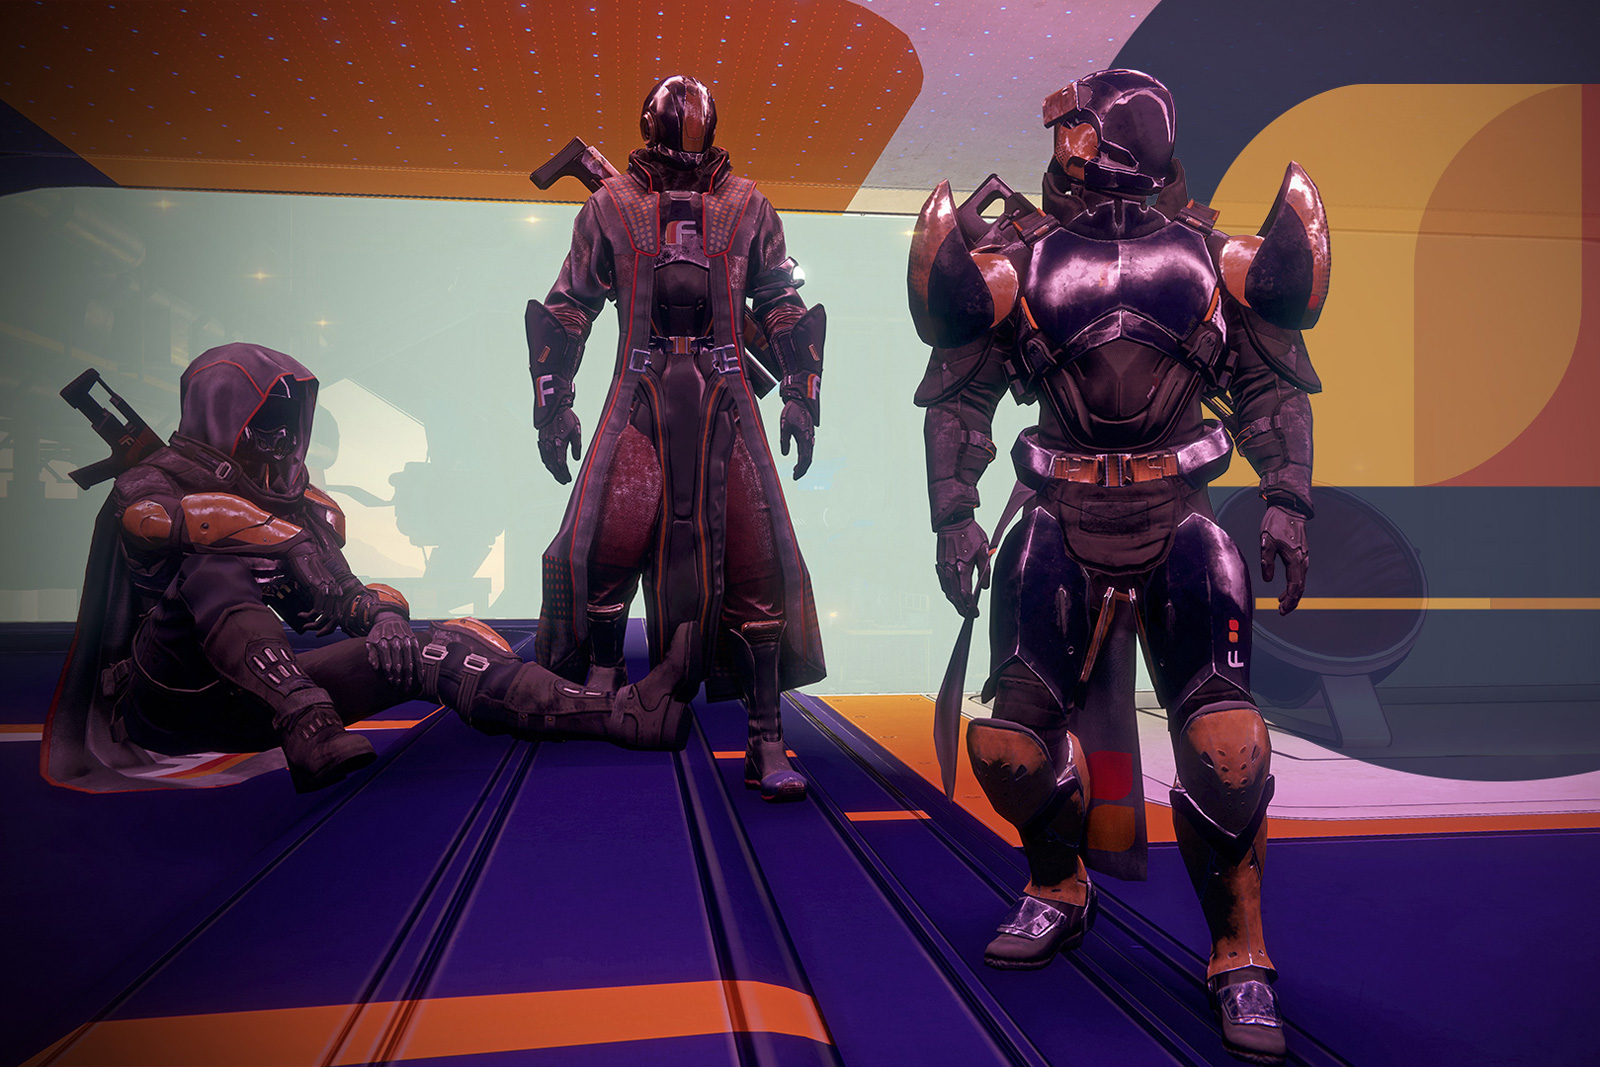 'Destiny 2' has another problem with diminishing rewards